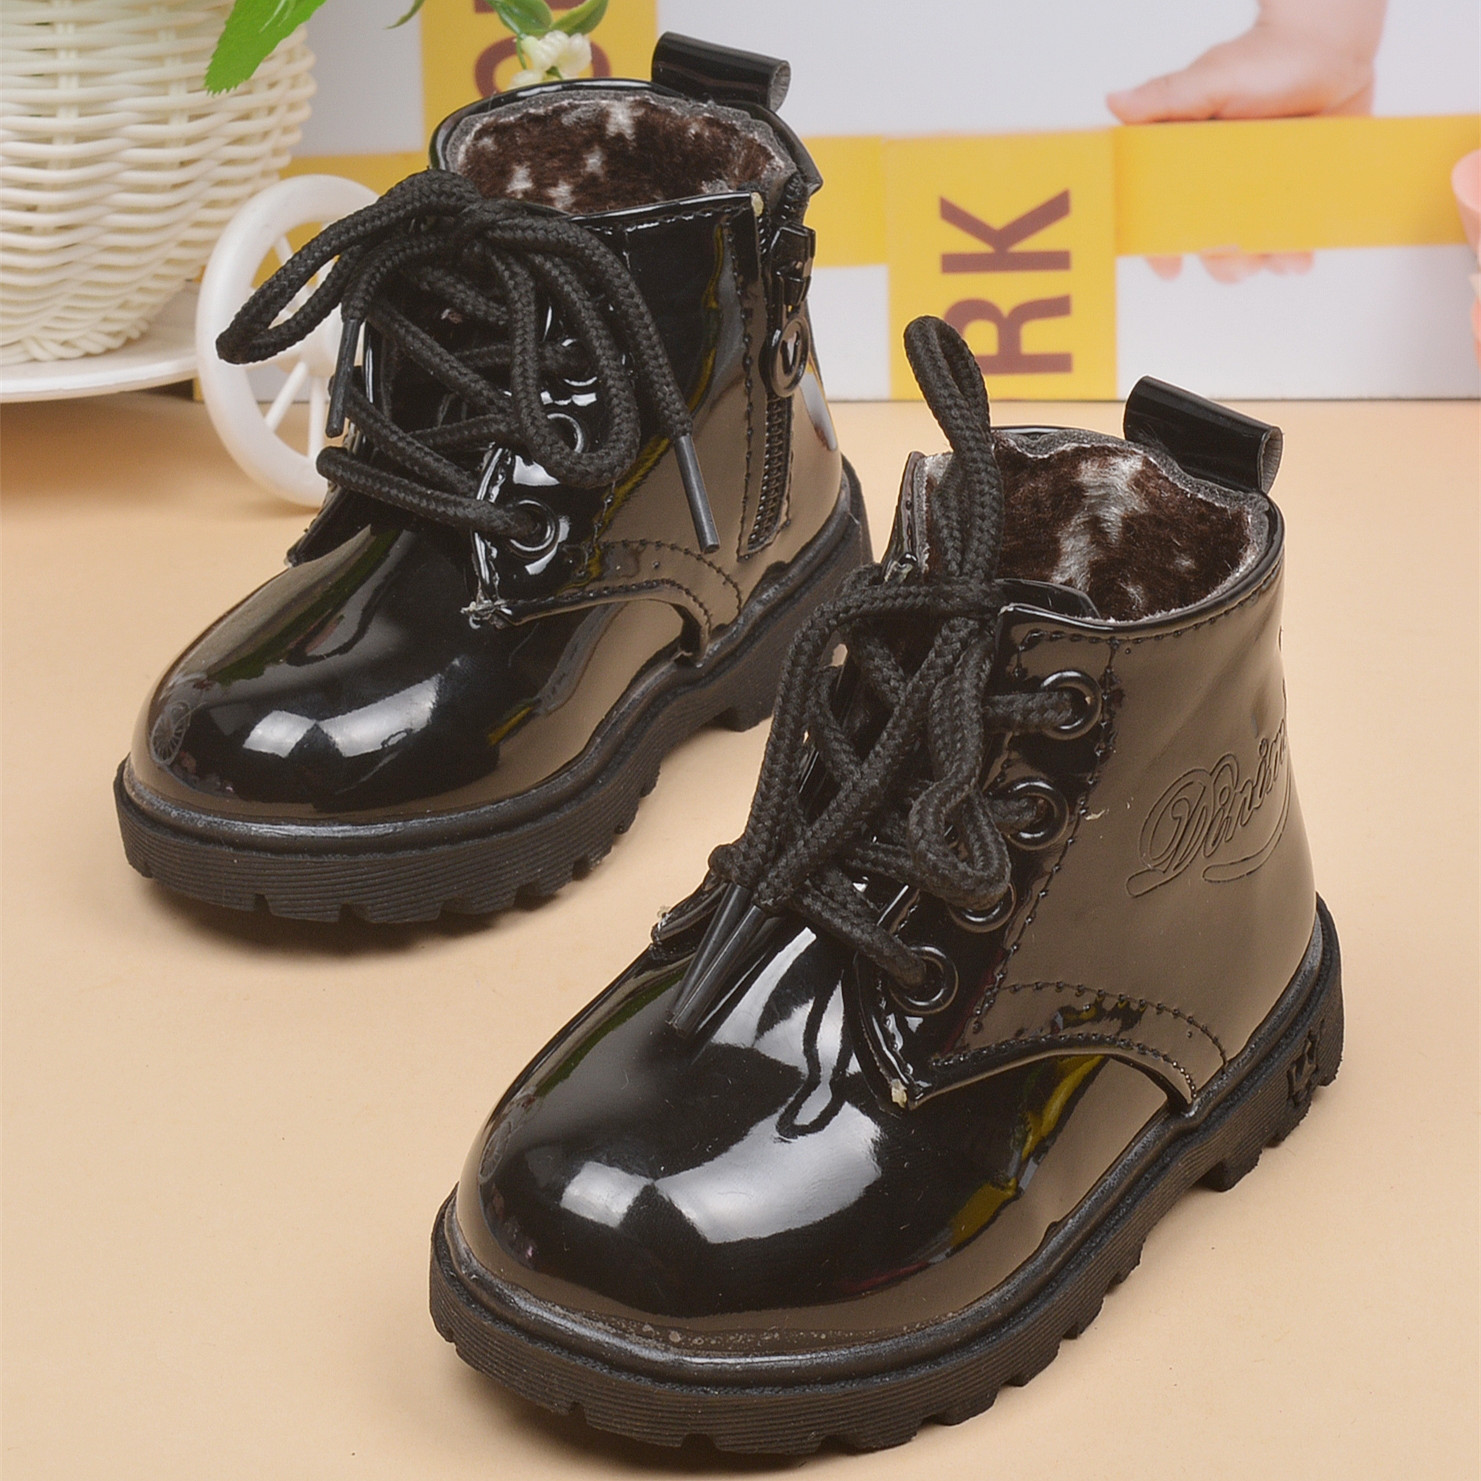 Compare Prices on Girls Boots Size 5- Online Shopping/Buy Low ...